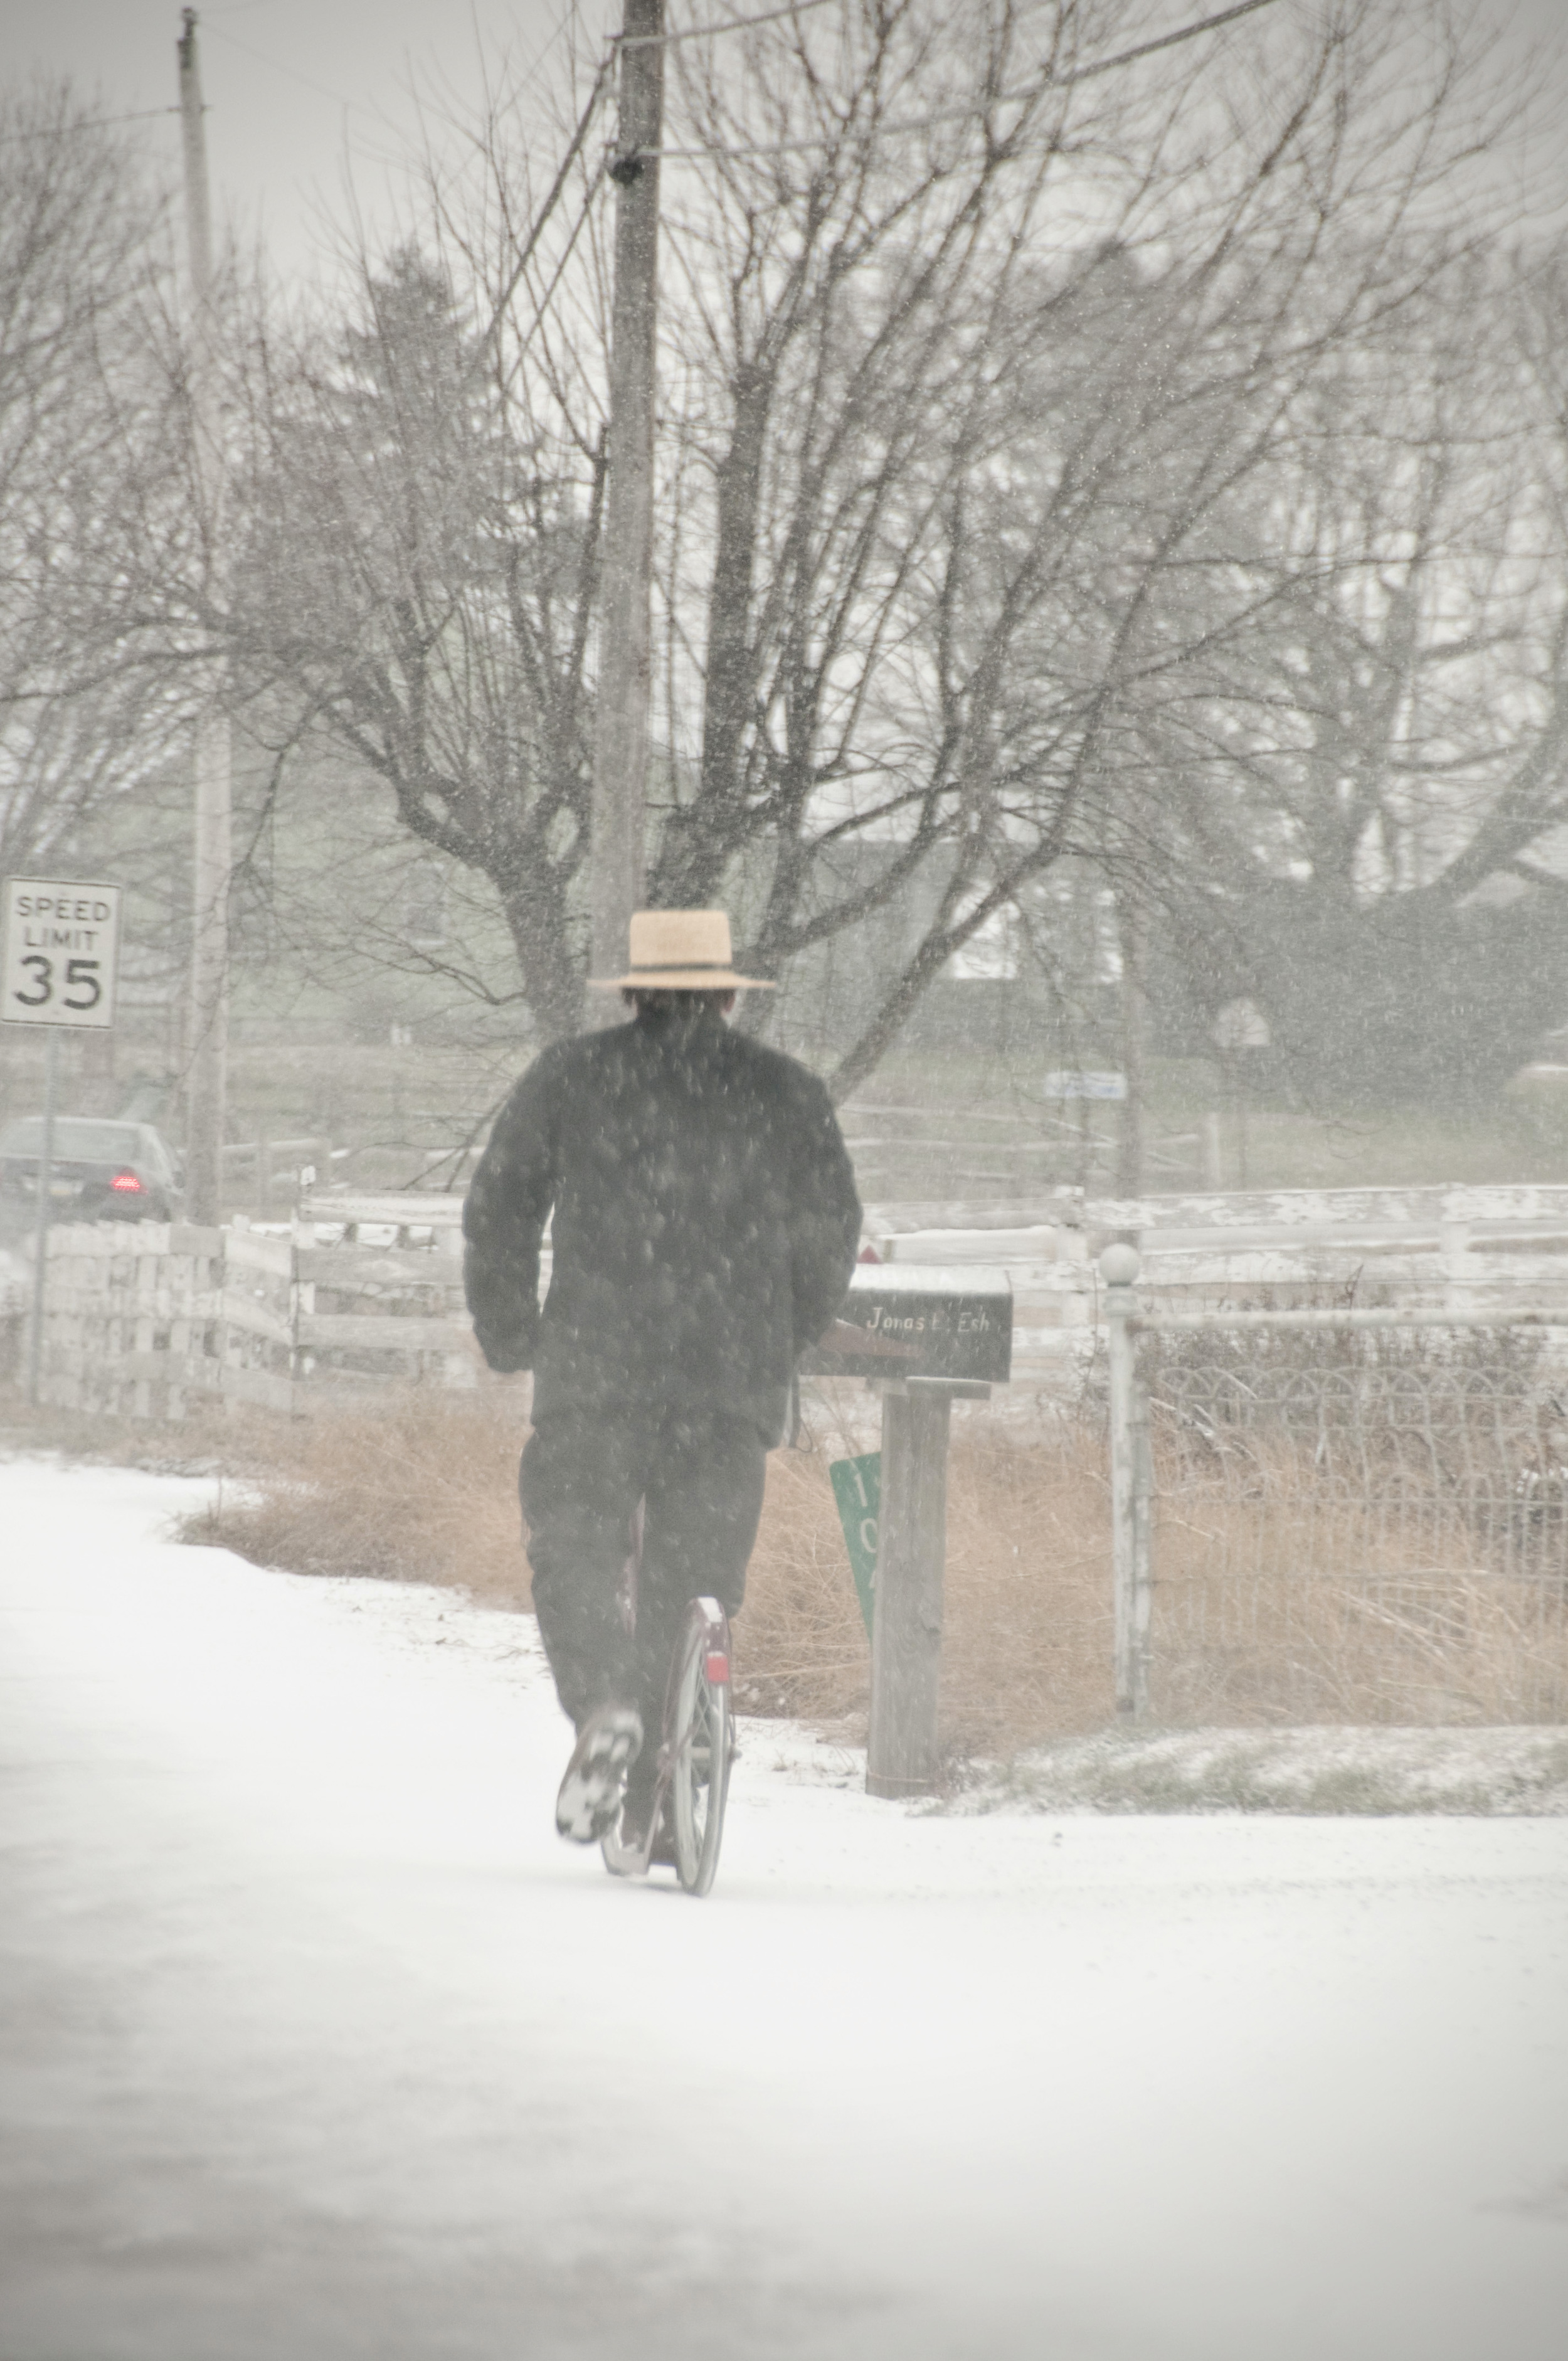 Amish scooter in snow